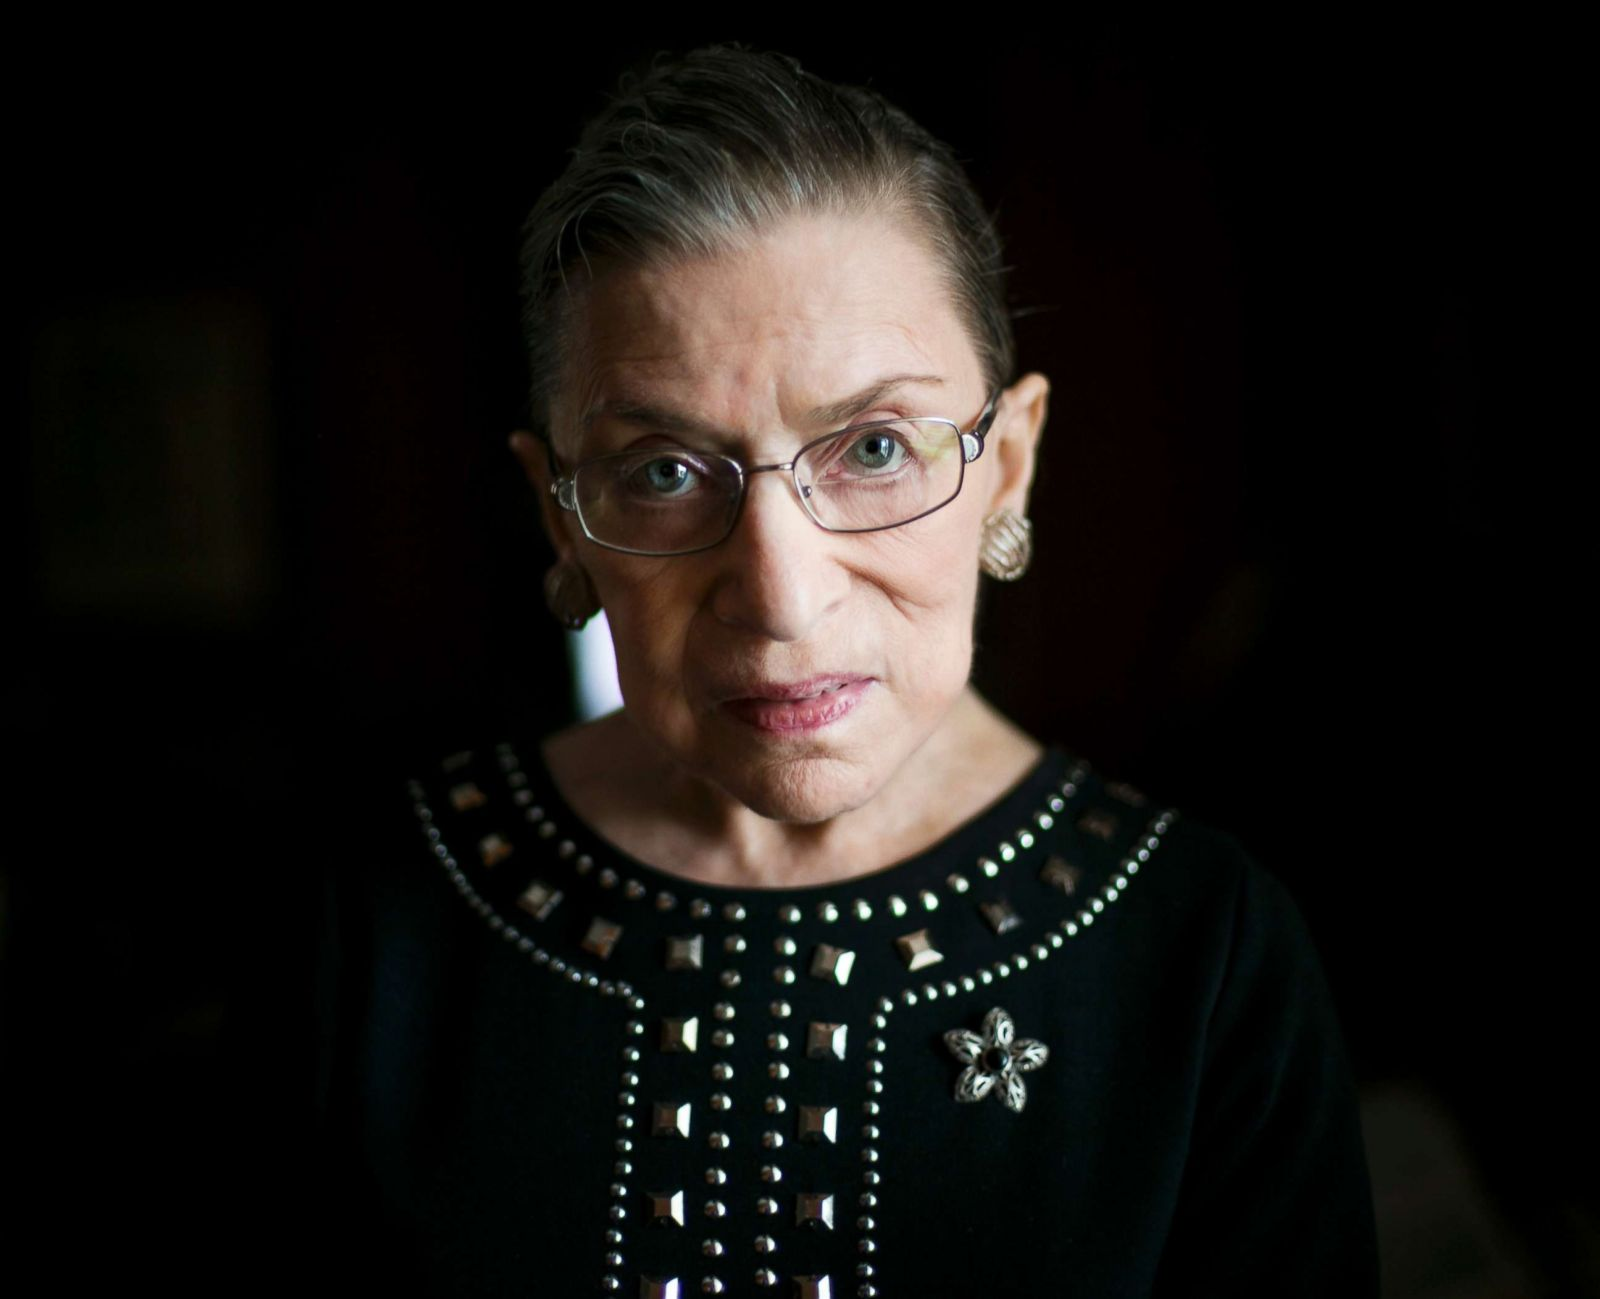 Ruth Bader Ginsburg, powerhouse Supreme Court Justice, dies at 87 - cover